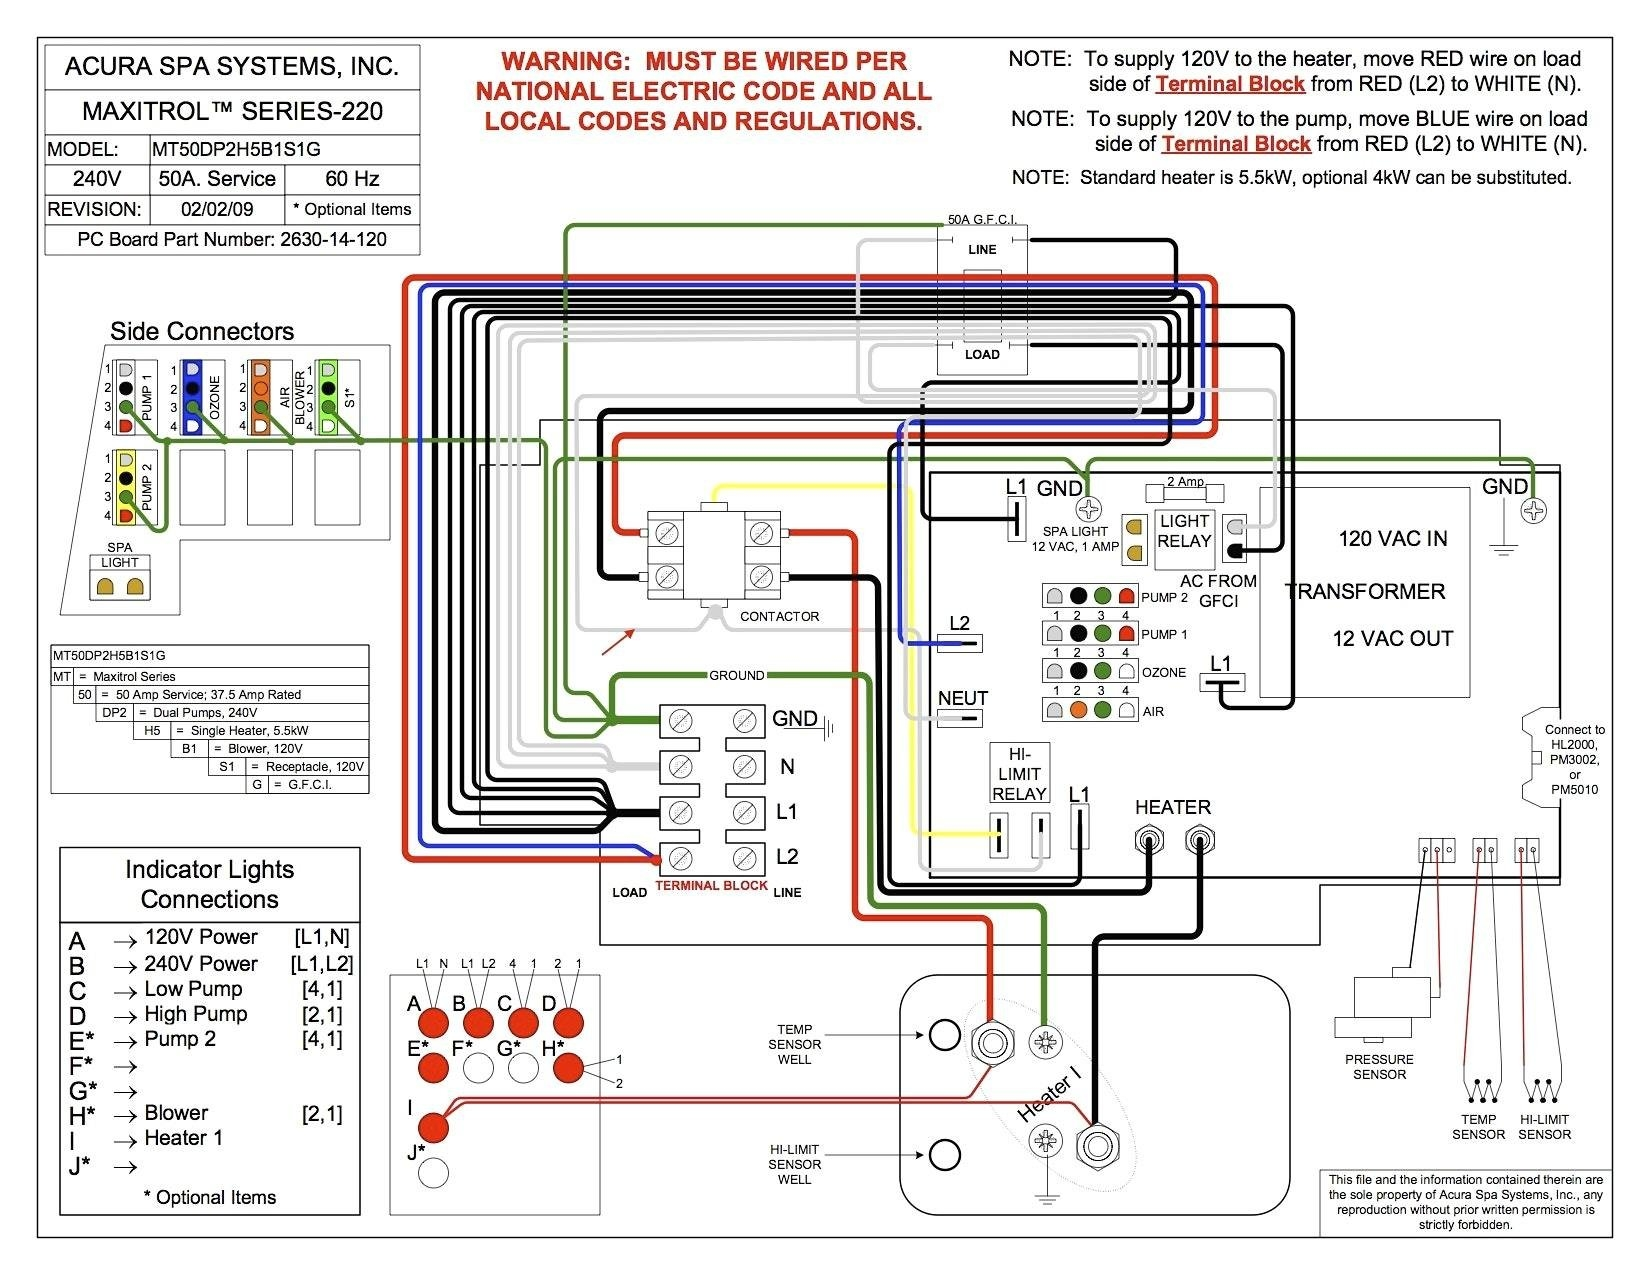 hot tub wiring diagram Collection-Hot Spring Spa Wiring Diagram Luxury Wiring Diagram for Hot Tub Free Download Wiring Diagram 20-r